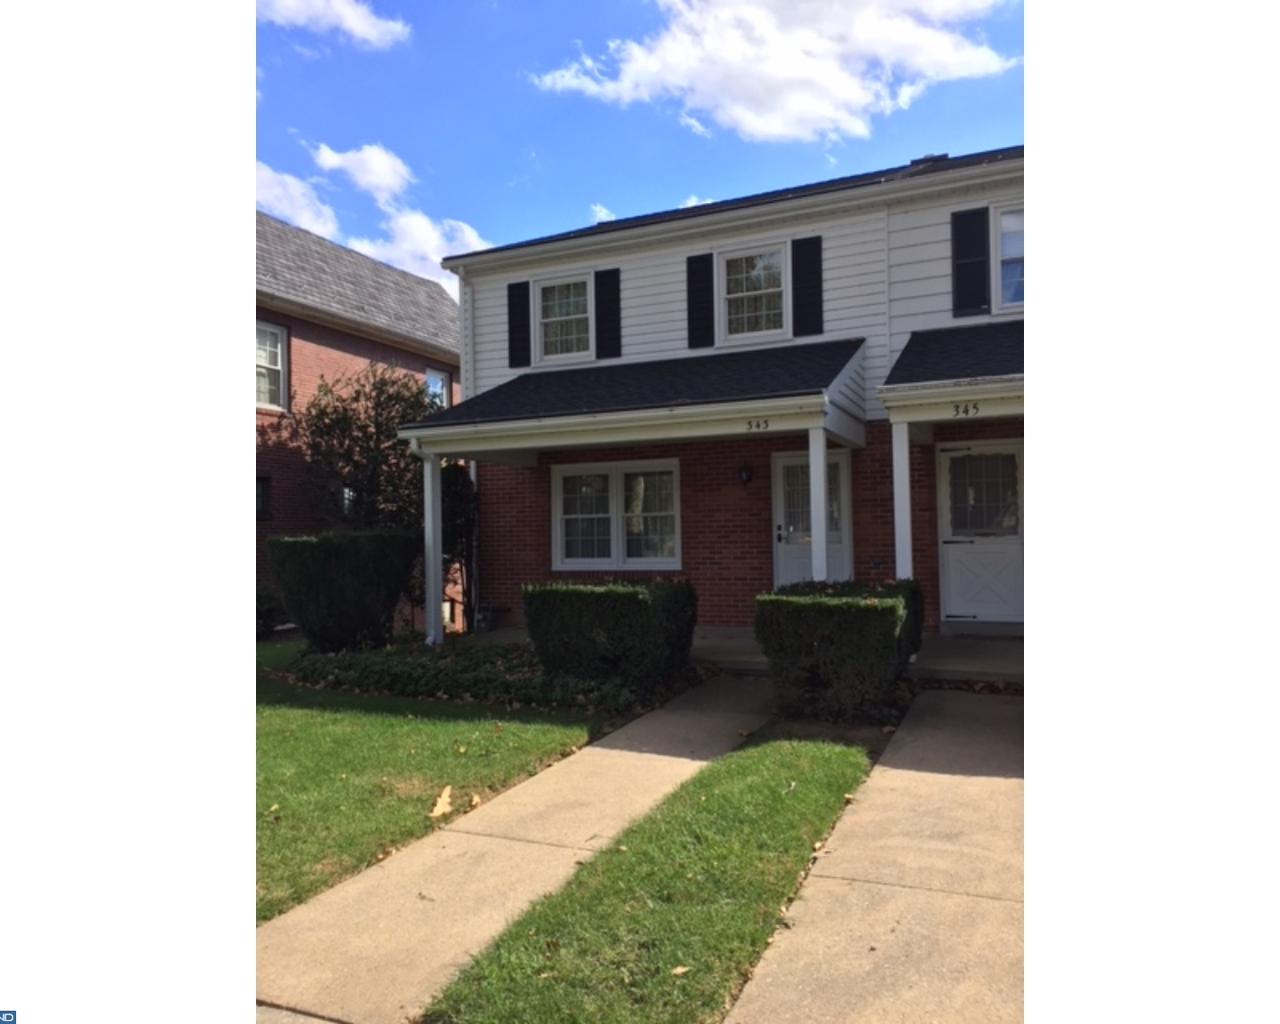 Property for sale at 343 SUNSET RD, West Reading,  PA 19611